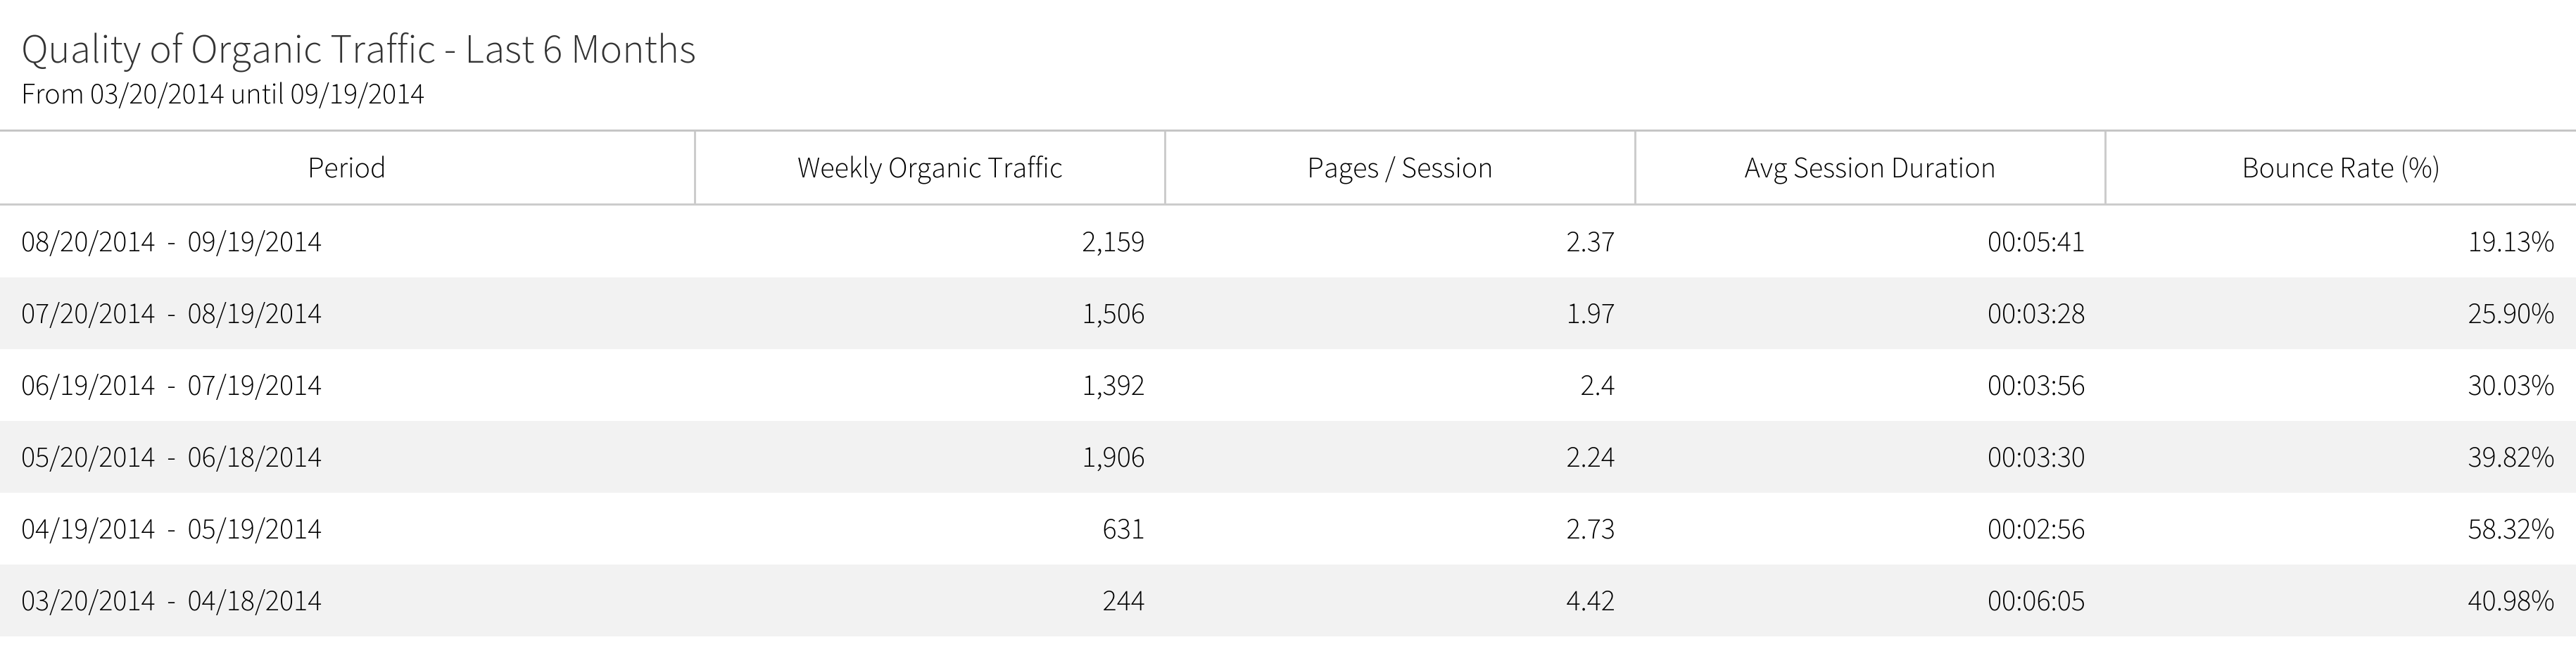 megalytic widget showing a group of metrics over 6 months